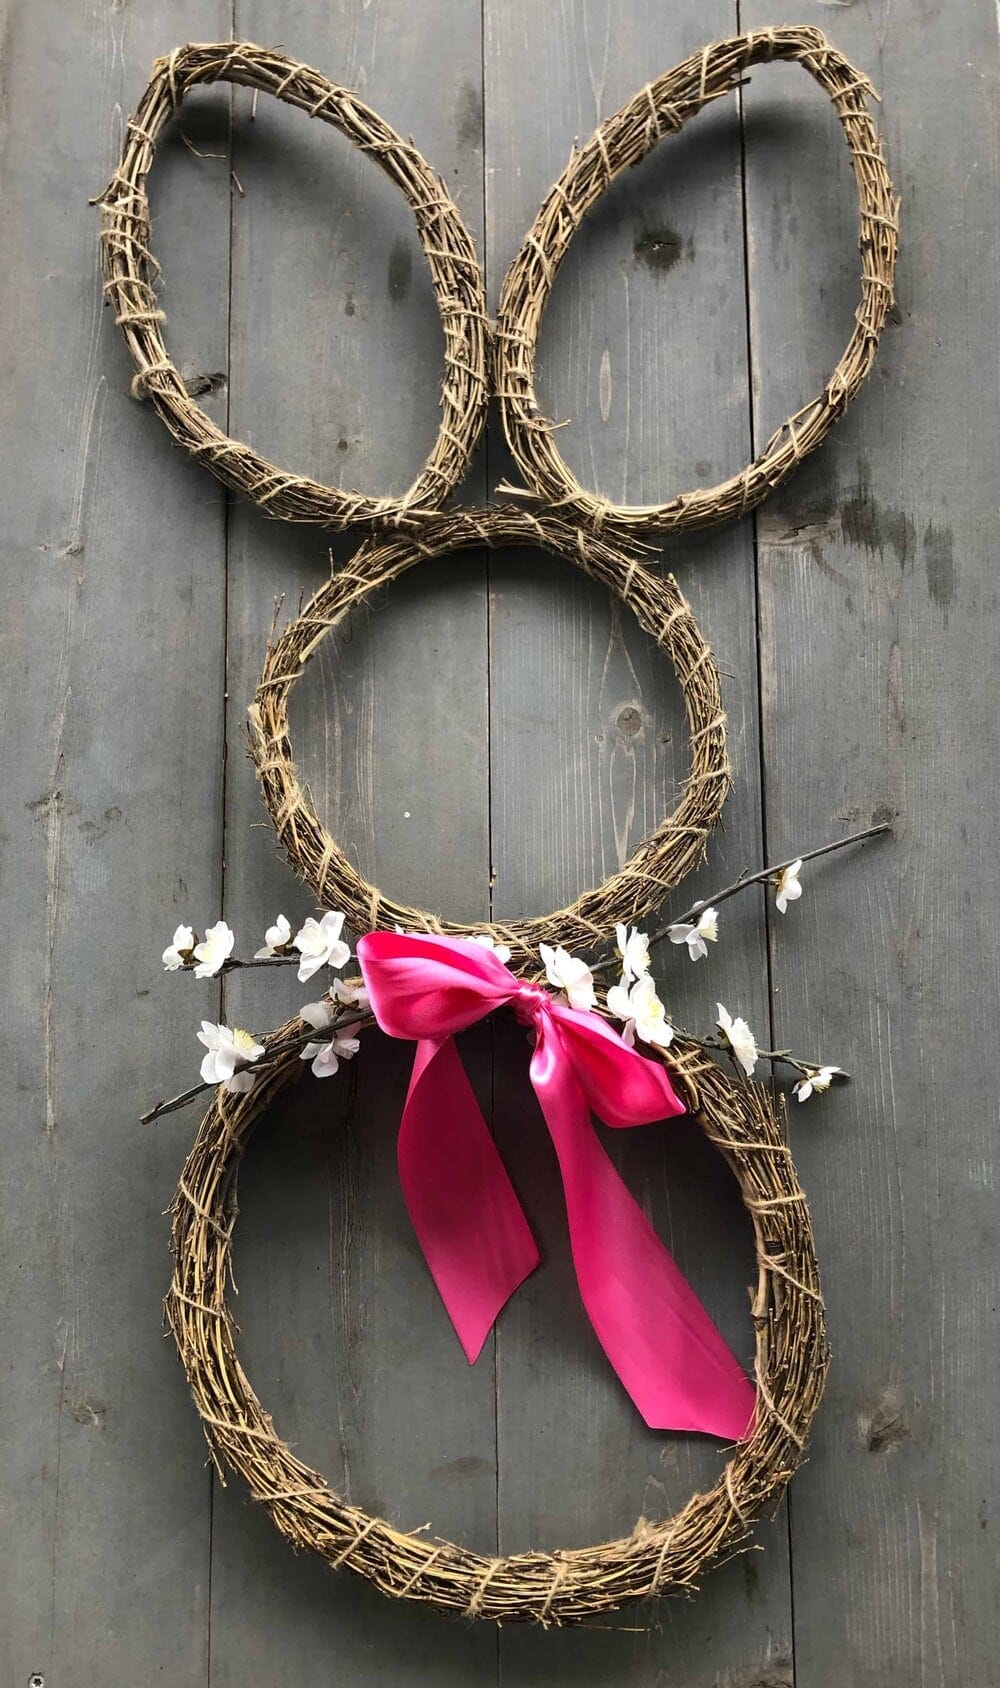 Missouri Girl DIY $6 Easter bunny wreath with pink bow and flower for whiskers